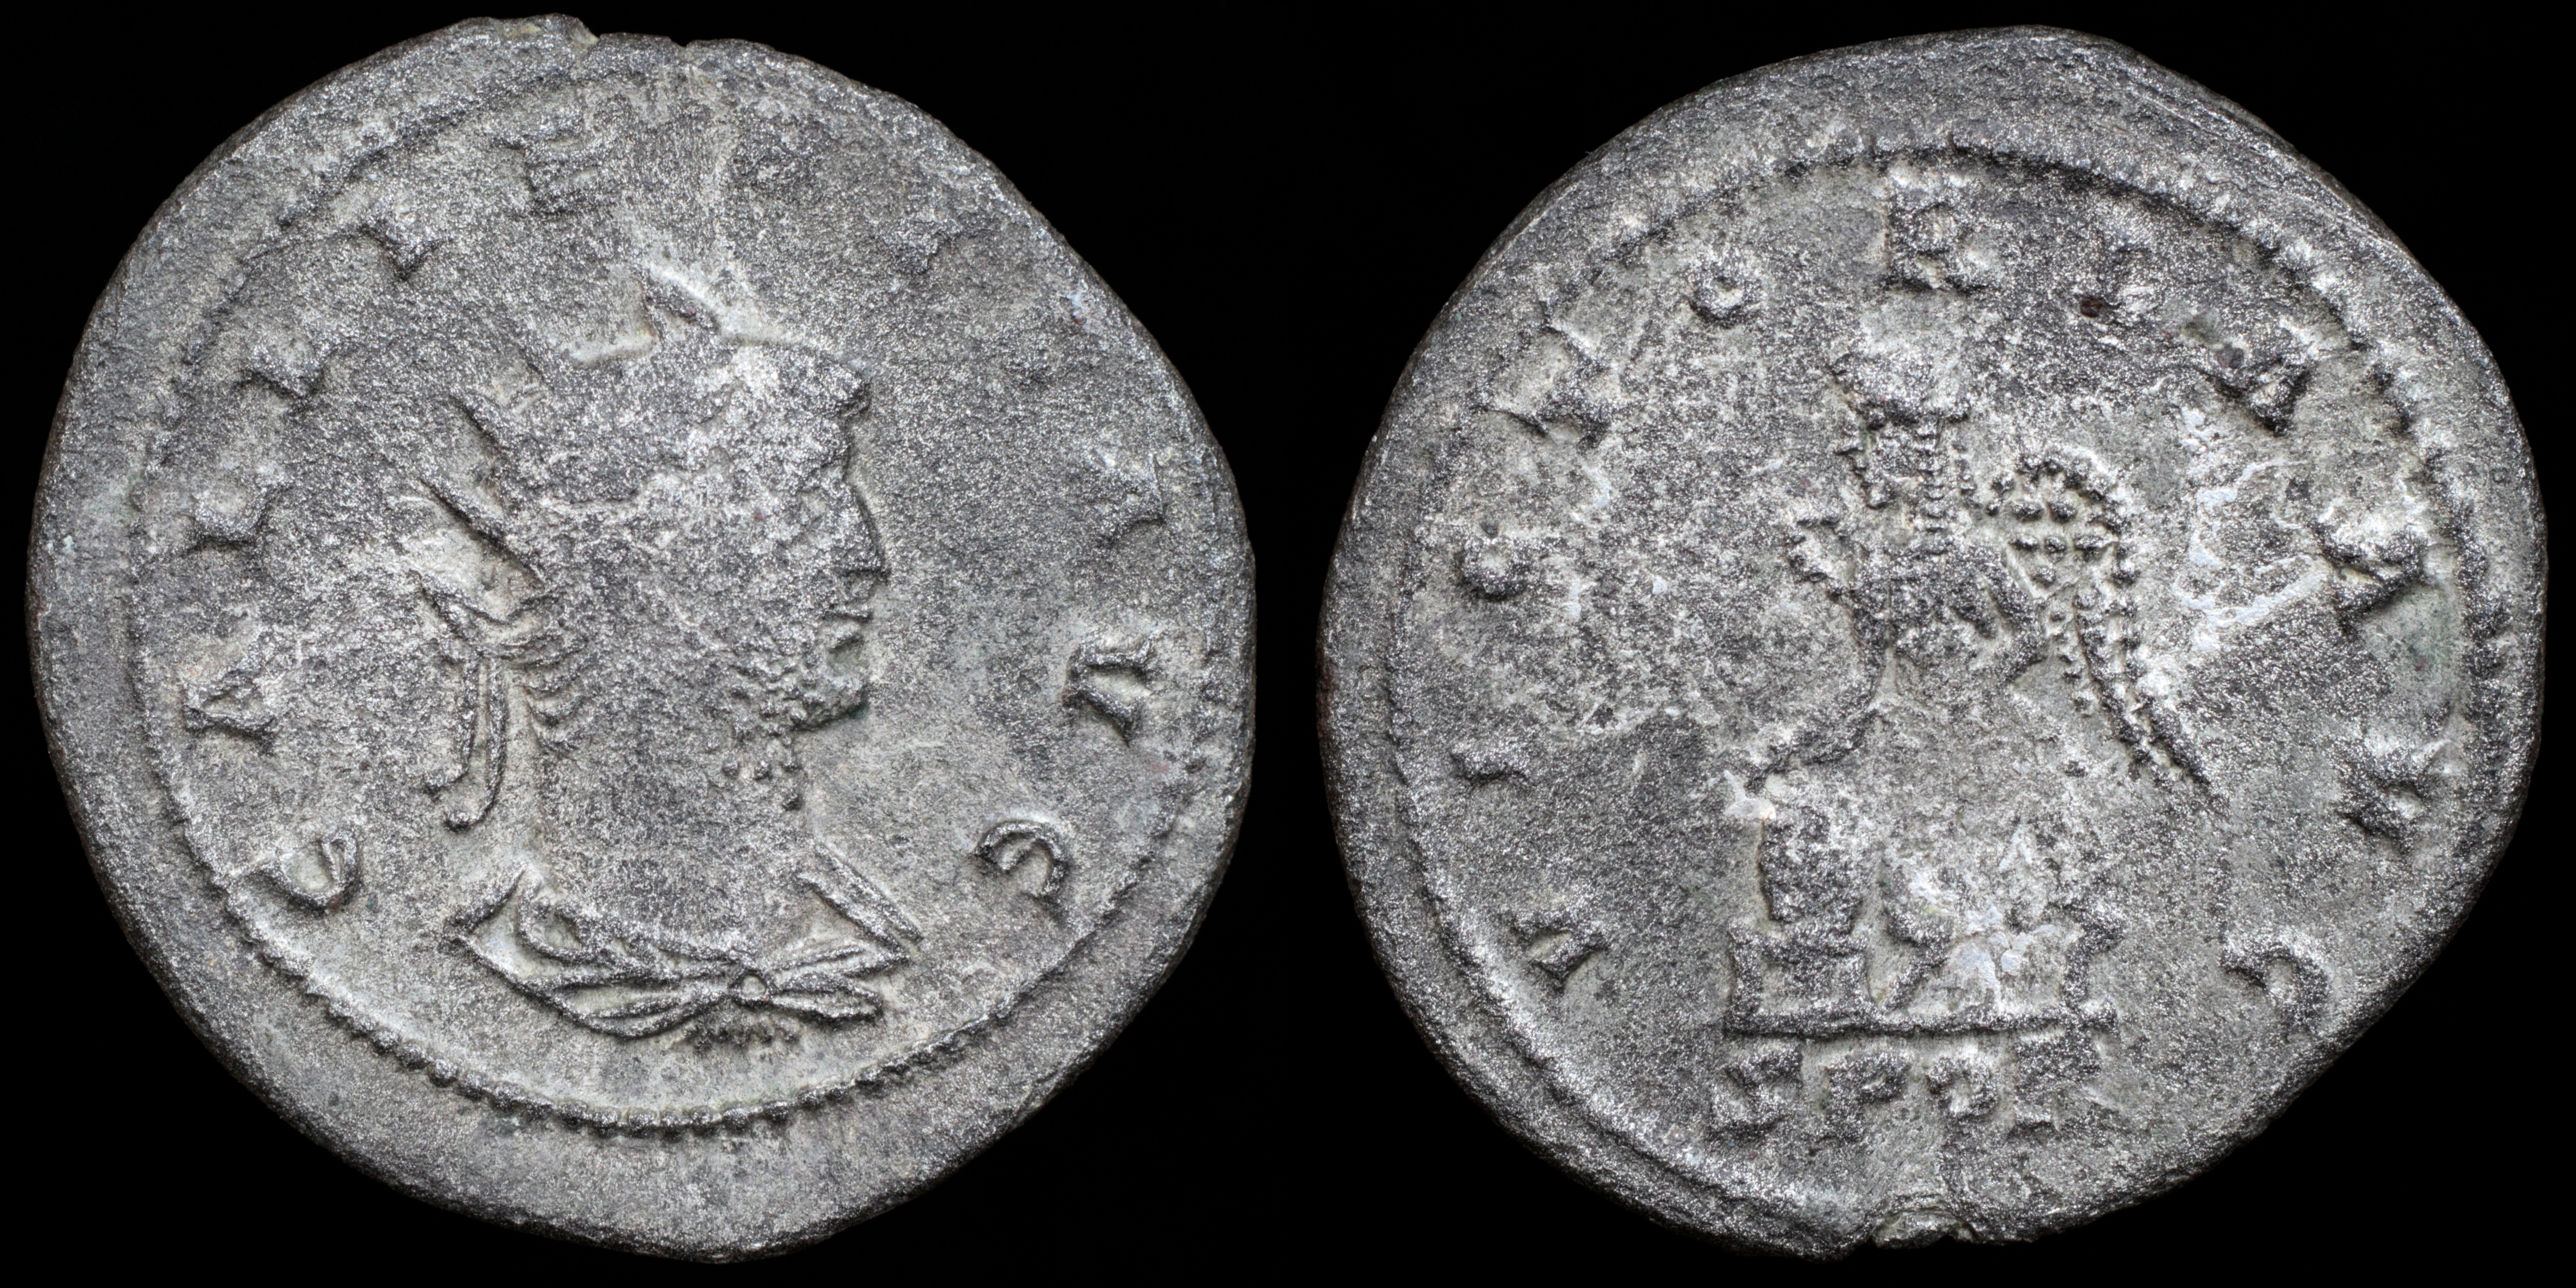 /Files/Images/Coinsite/CoinDB/940_Gallienus_Victory_SPQR.jpg